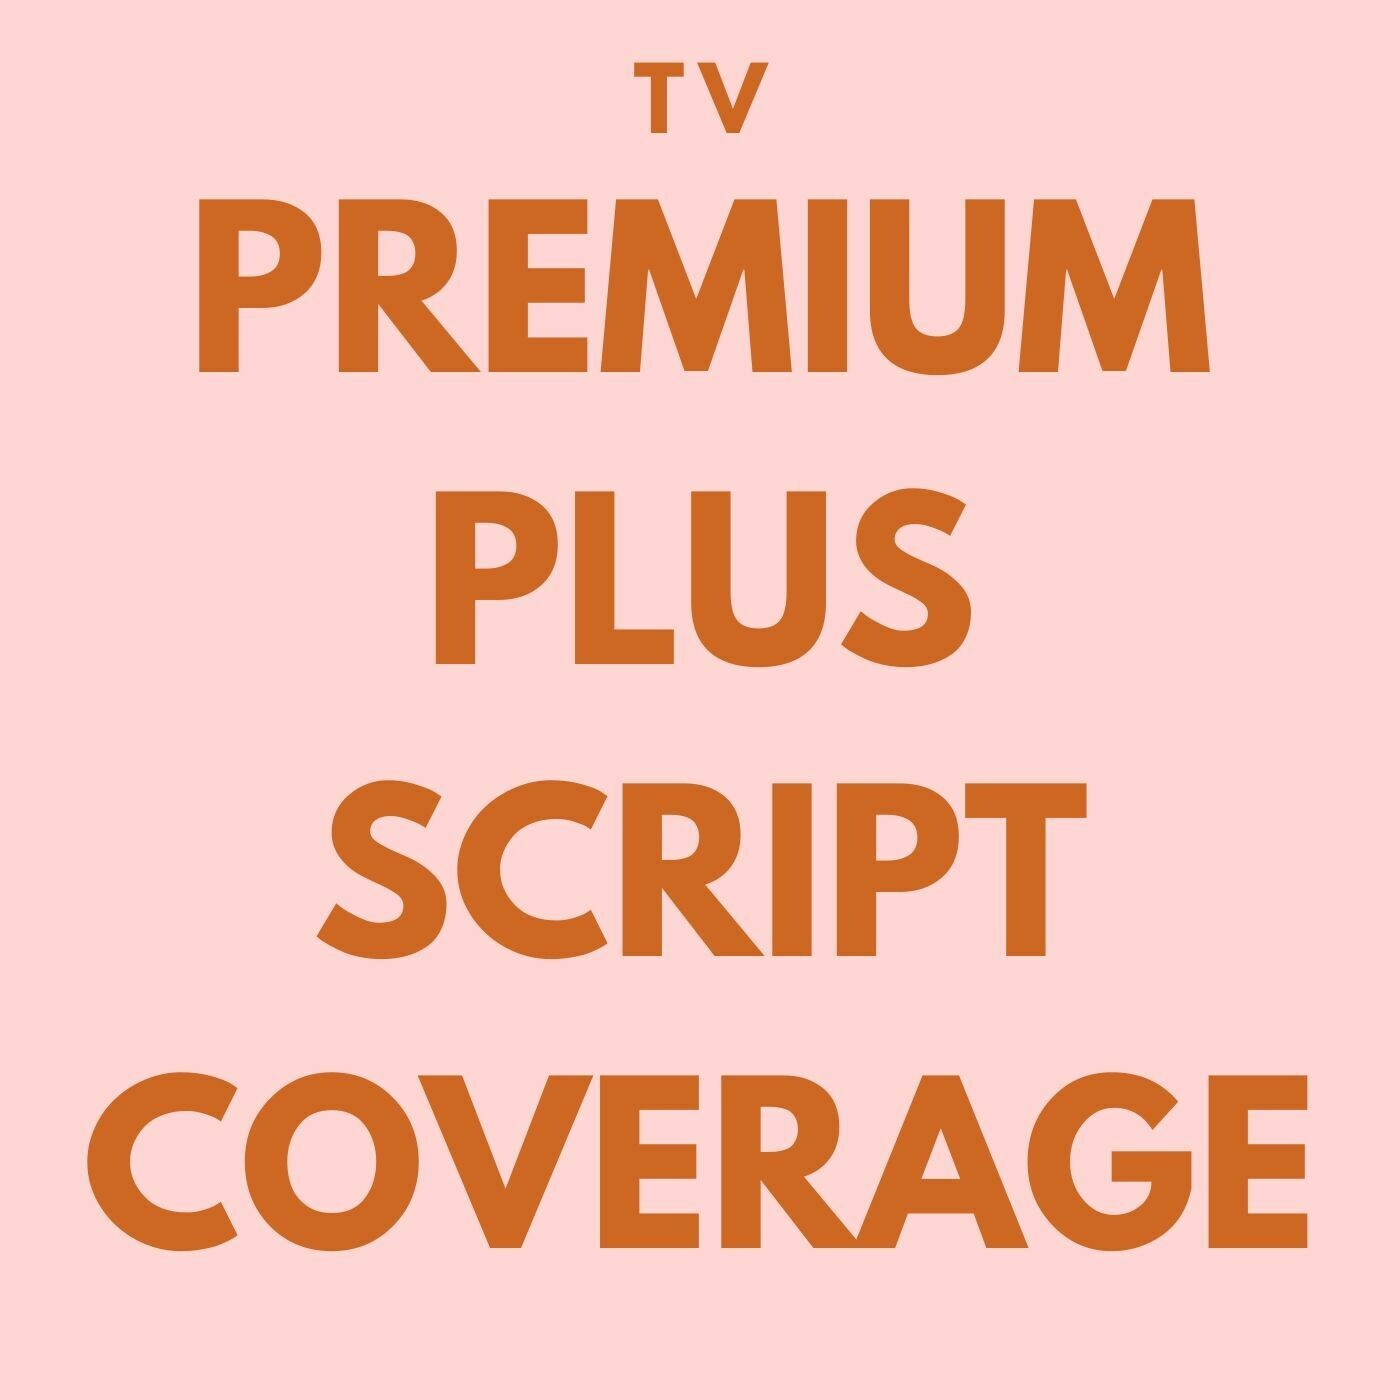 TV - Premium Plus Script Coverage